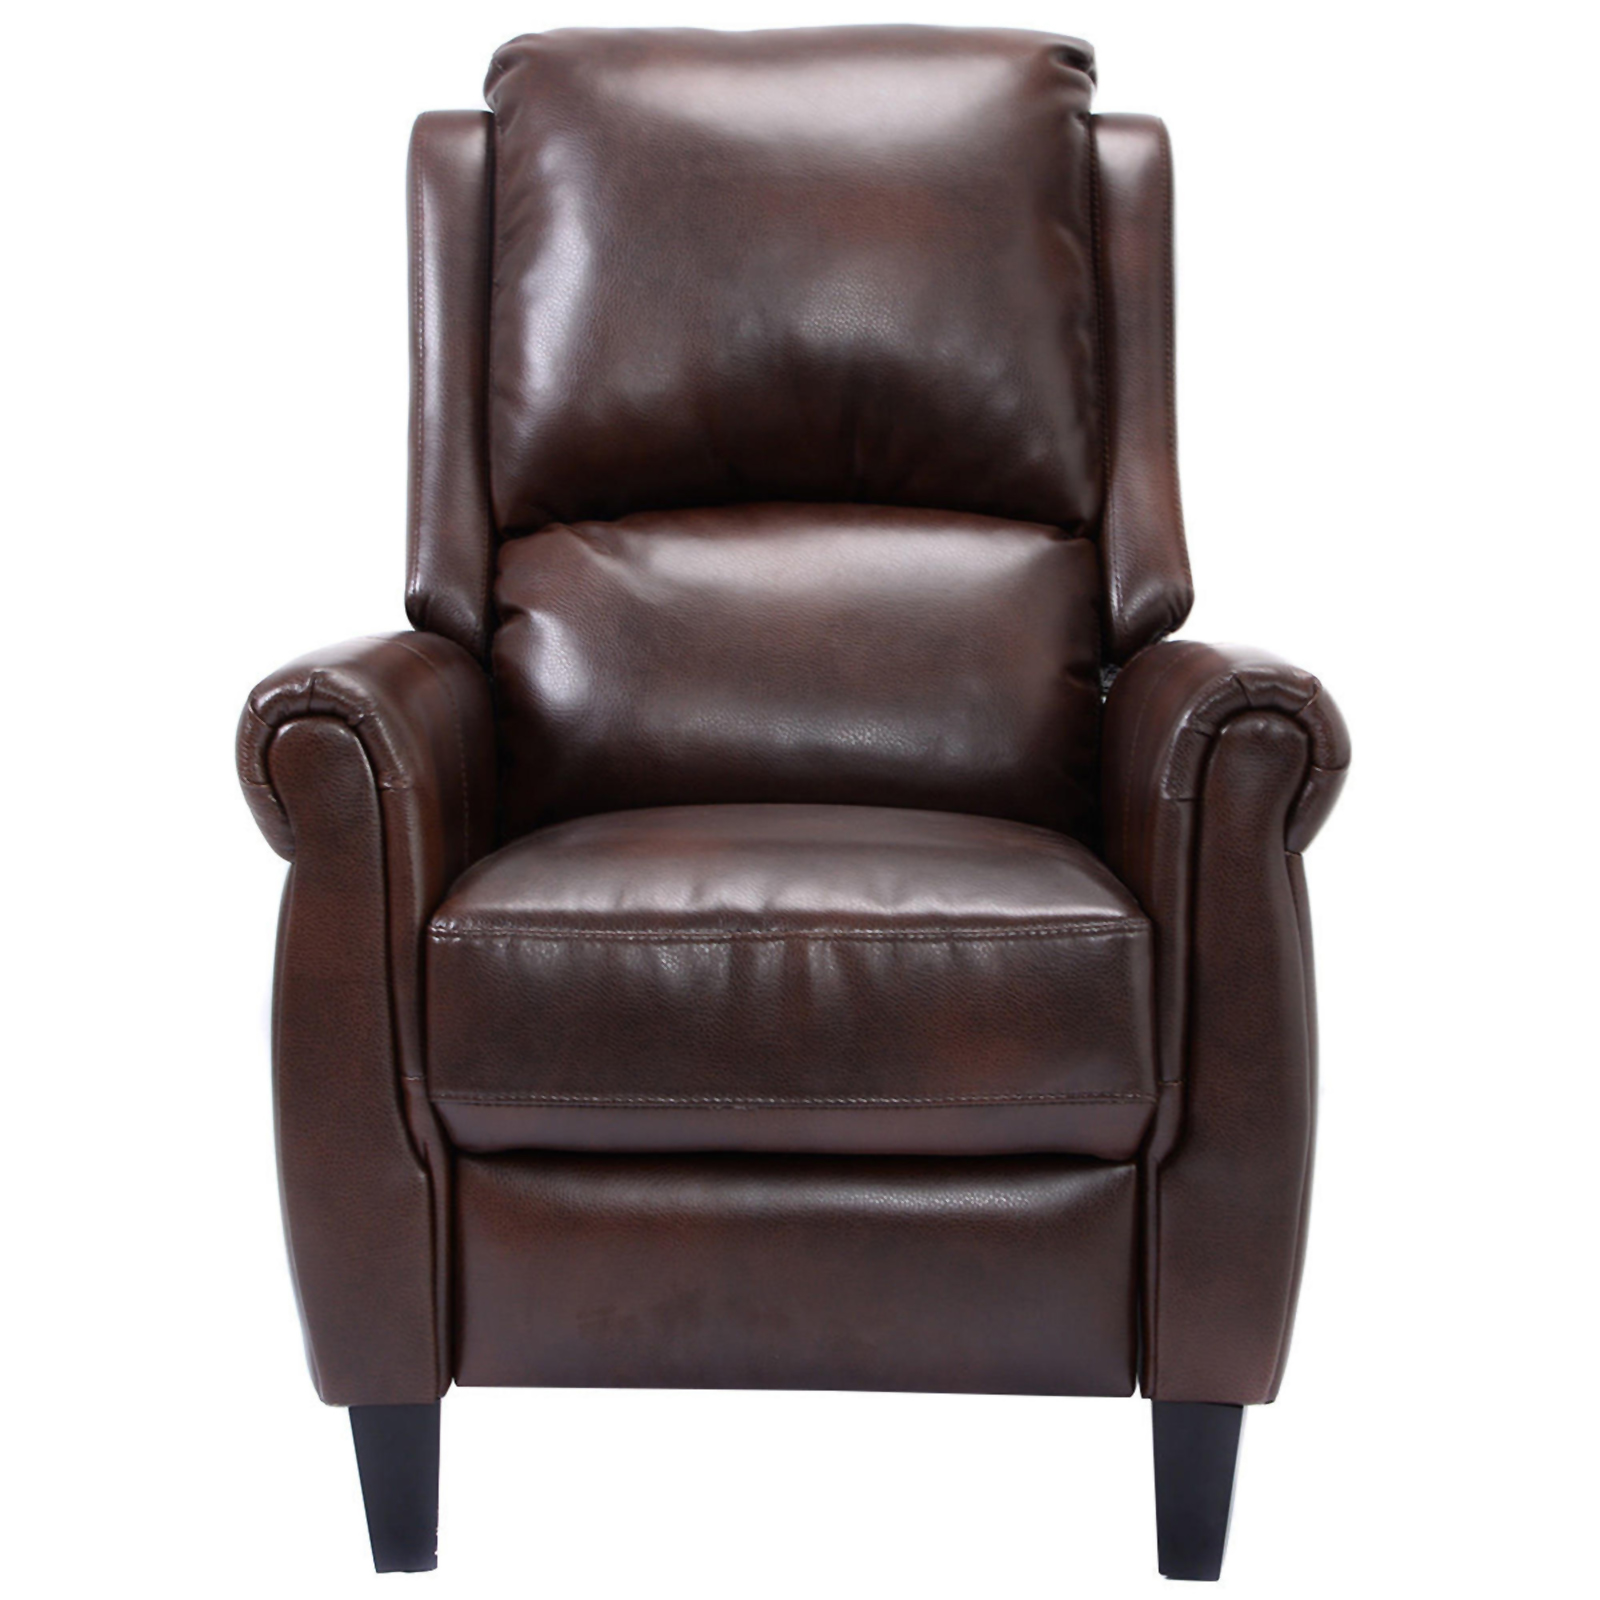 Push Back Chair Goplus Leather Push Back Leather Recliner Chair Sears